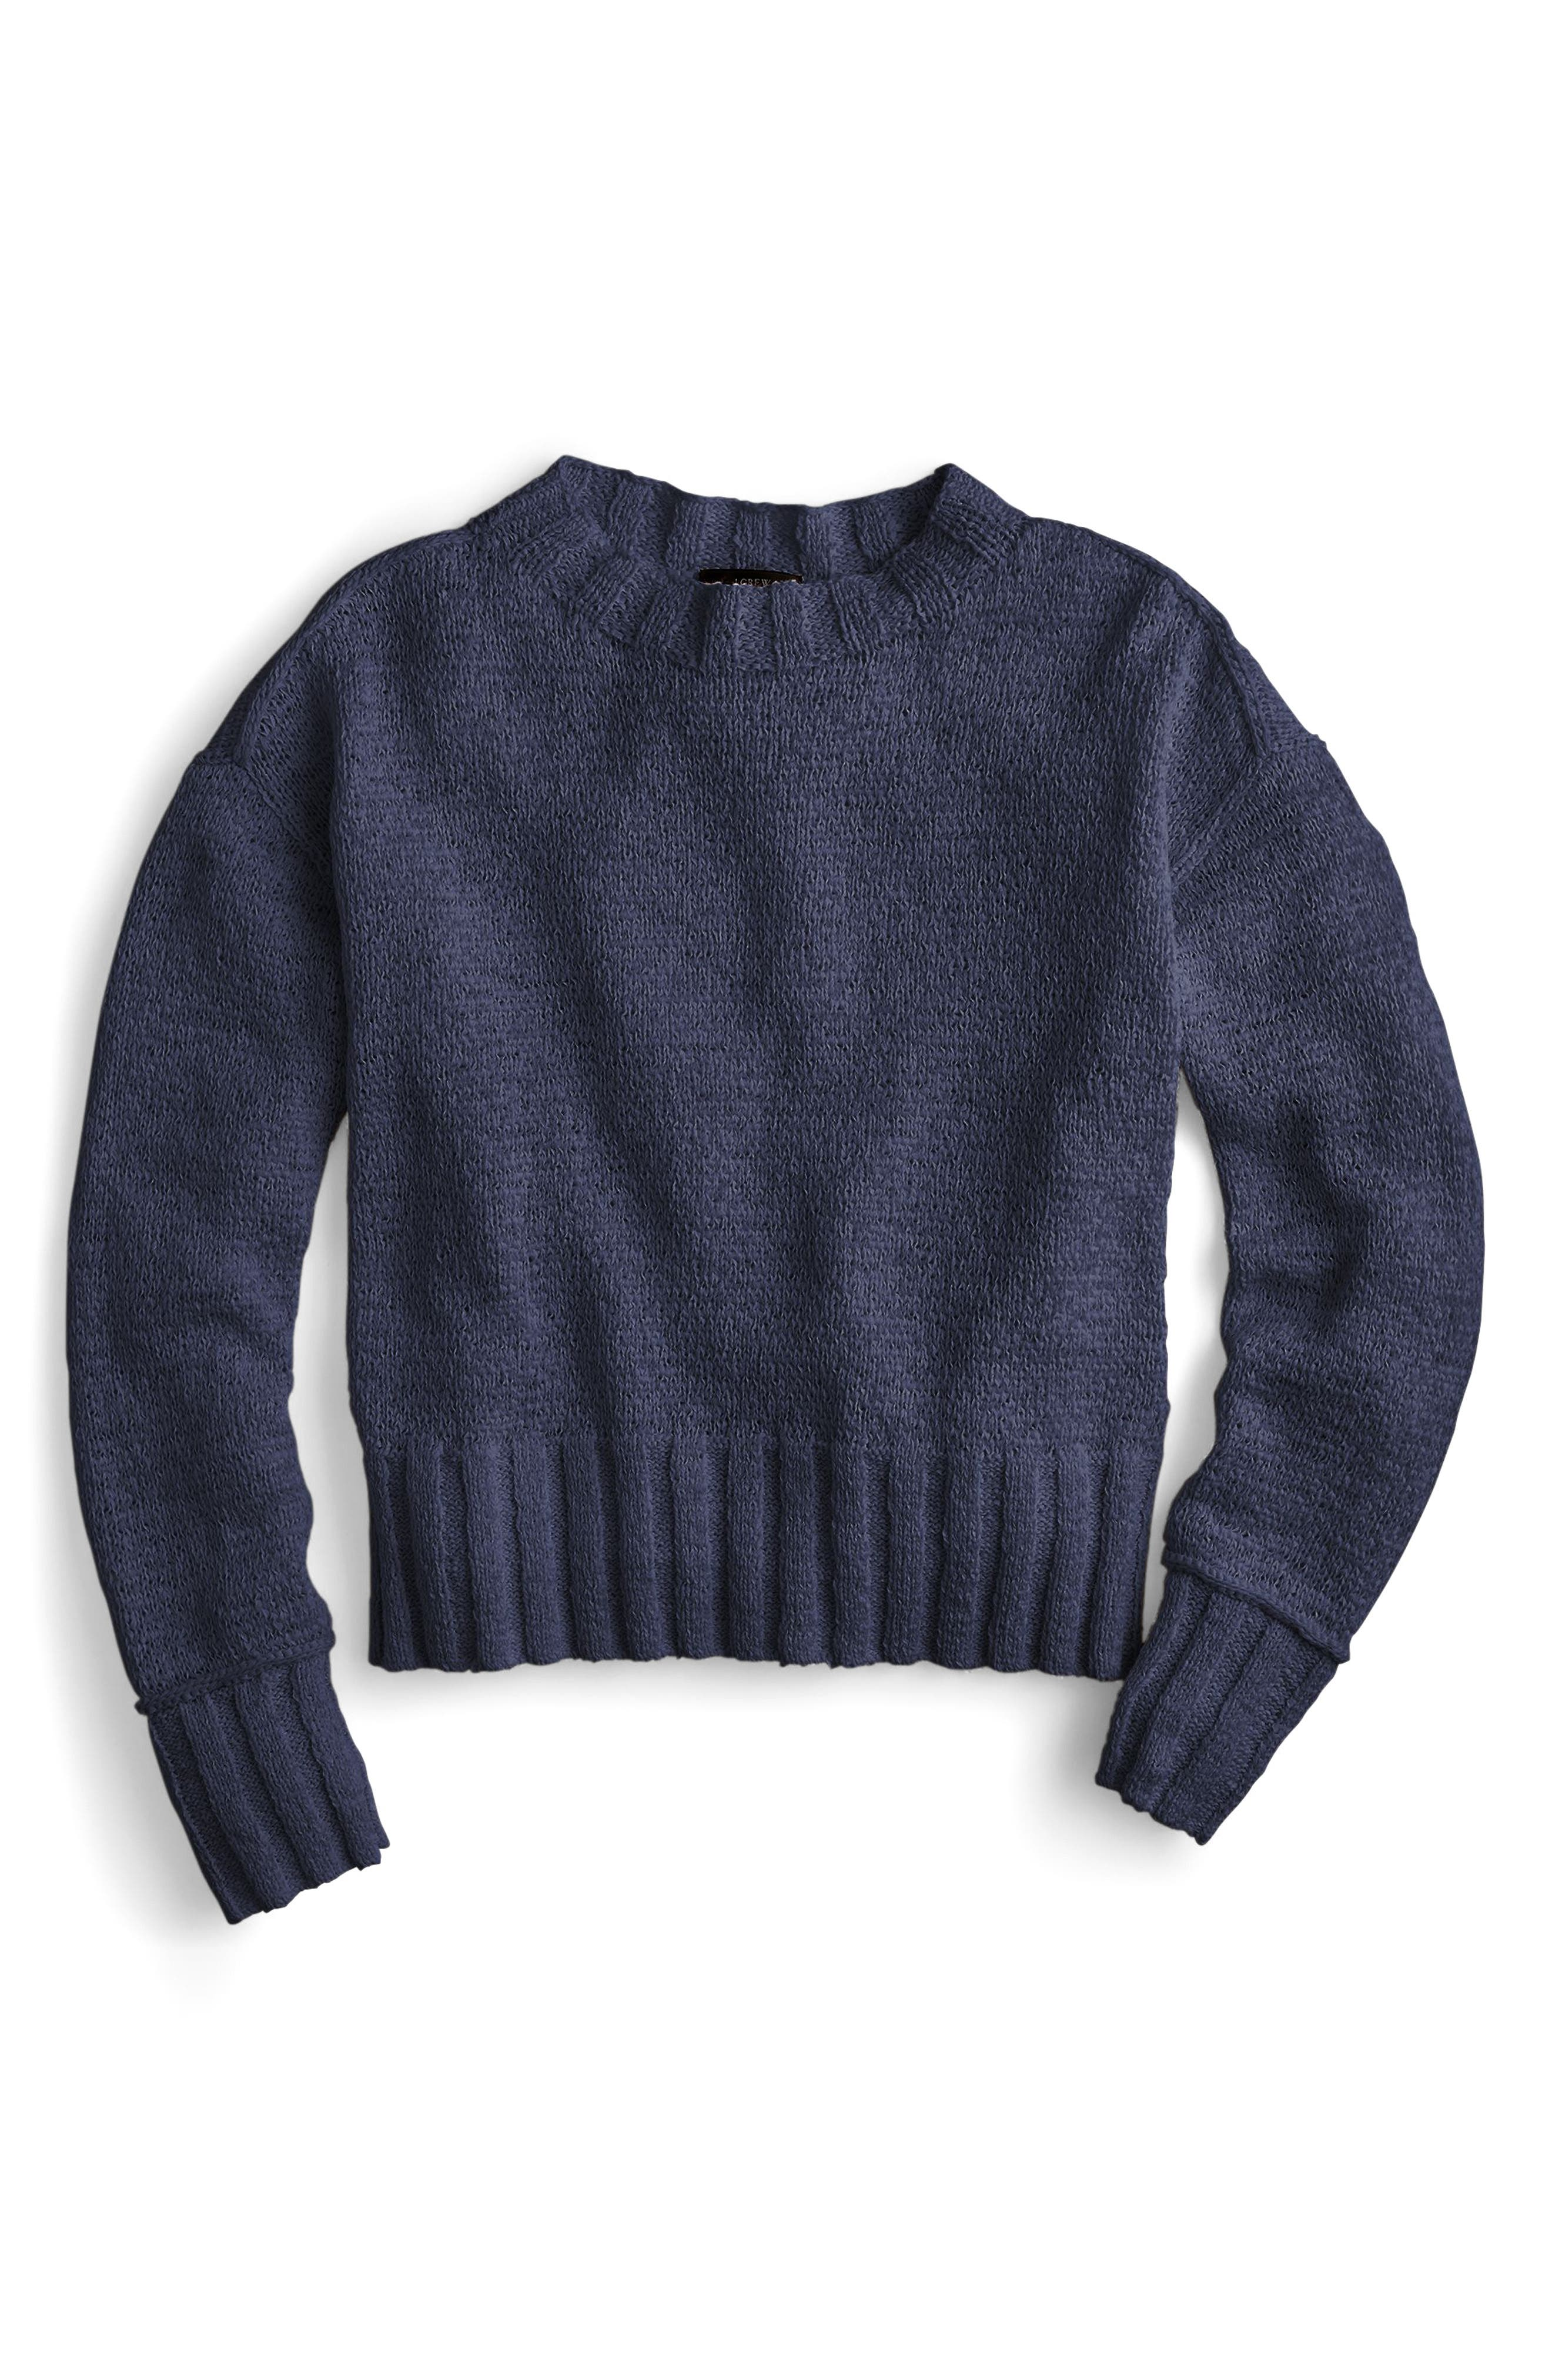 Erica Heathered Cotton Wide Rib Crewneck Sweater,                             Main thumbnail 2, color,